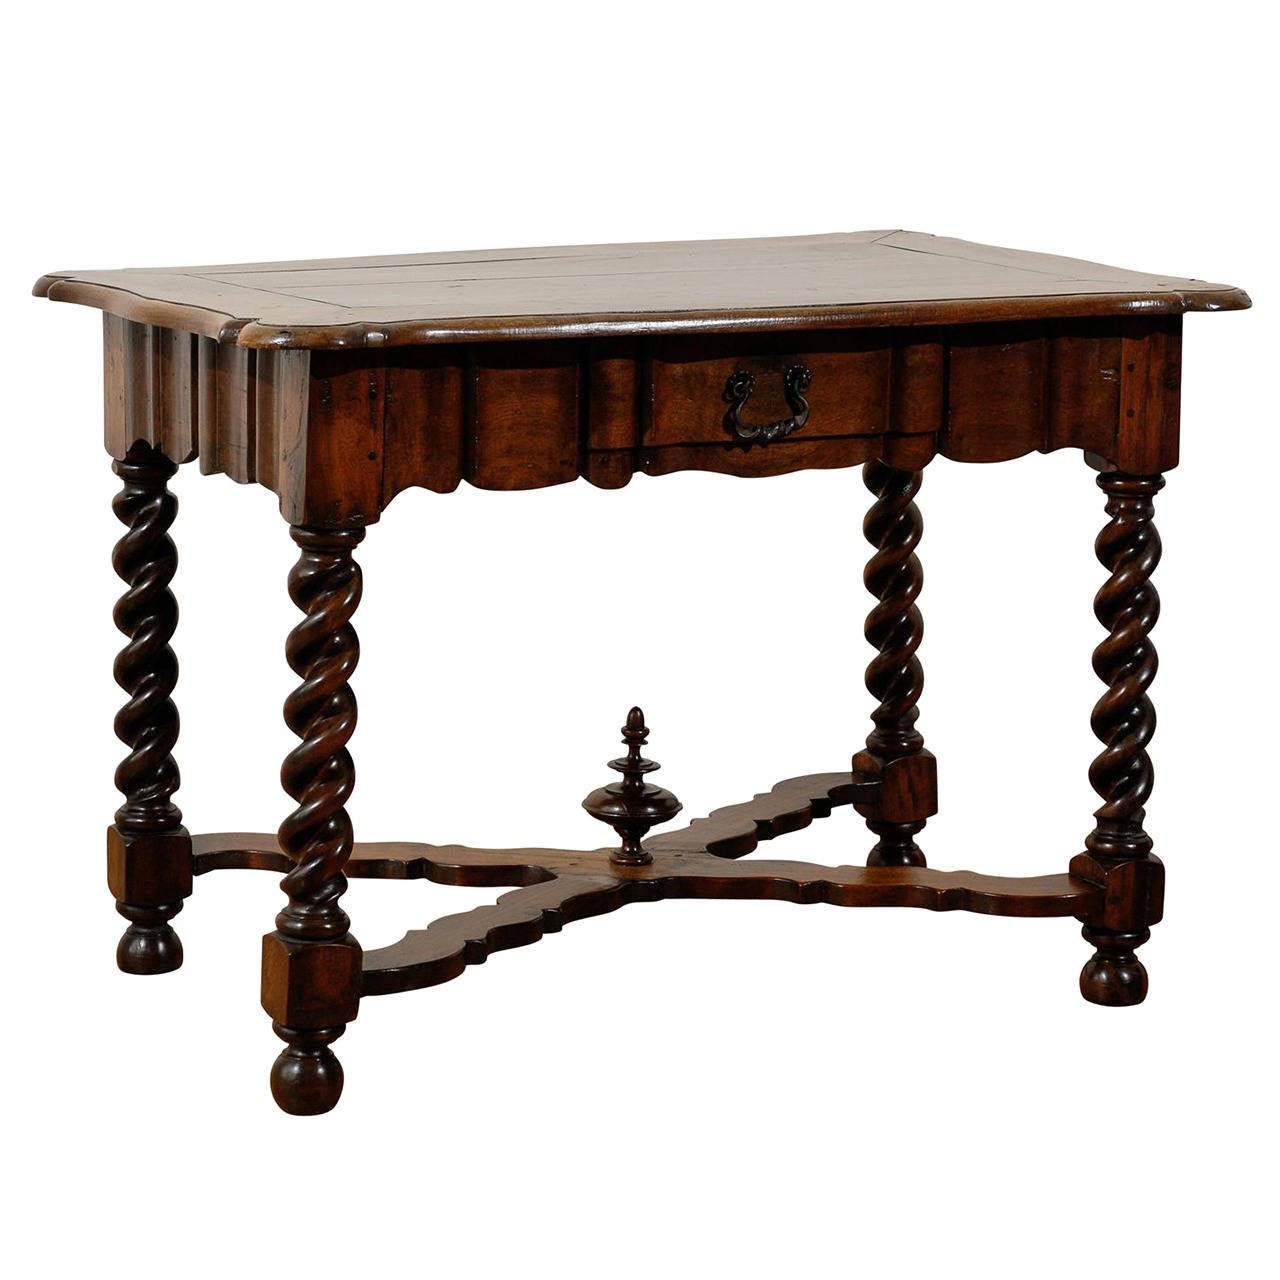 Spanish table at 1stdibs for Table in spanish